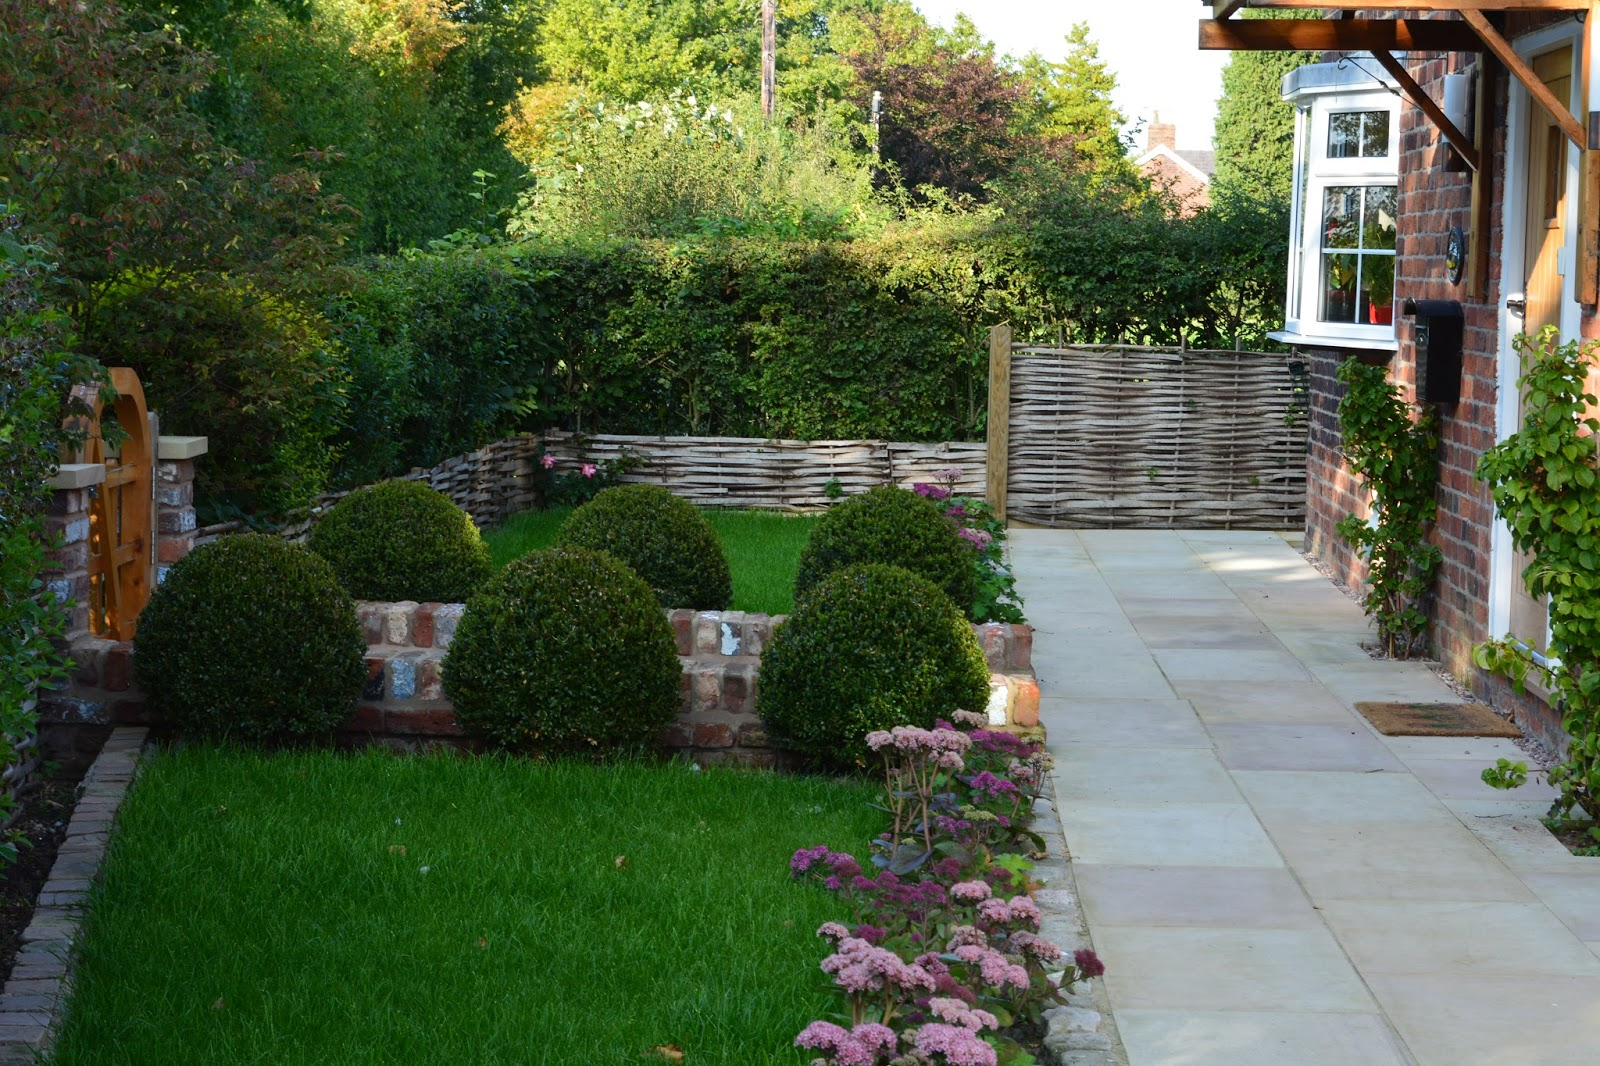 David keegans garden design blog welcome back to the for Back garden designs uk